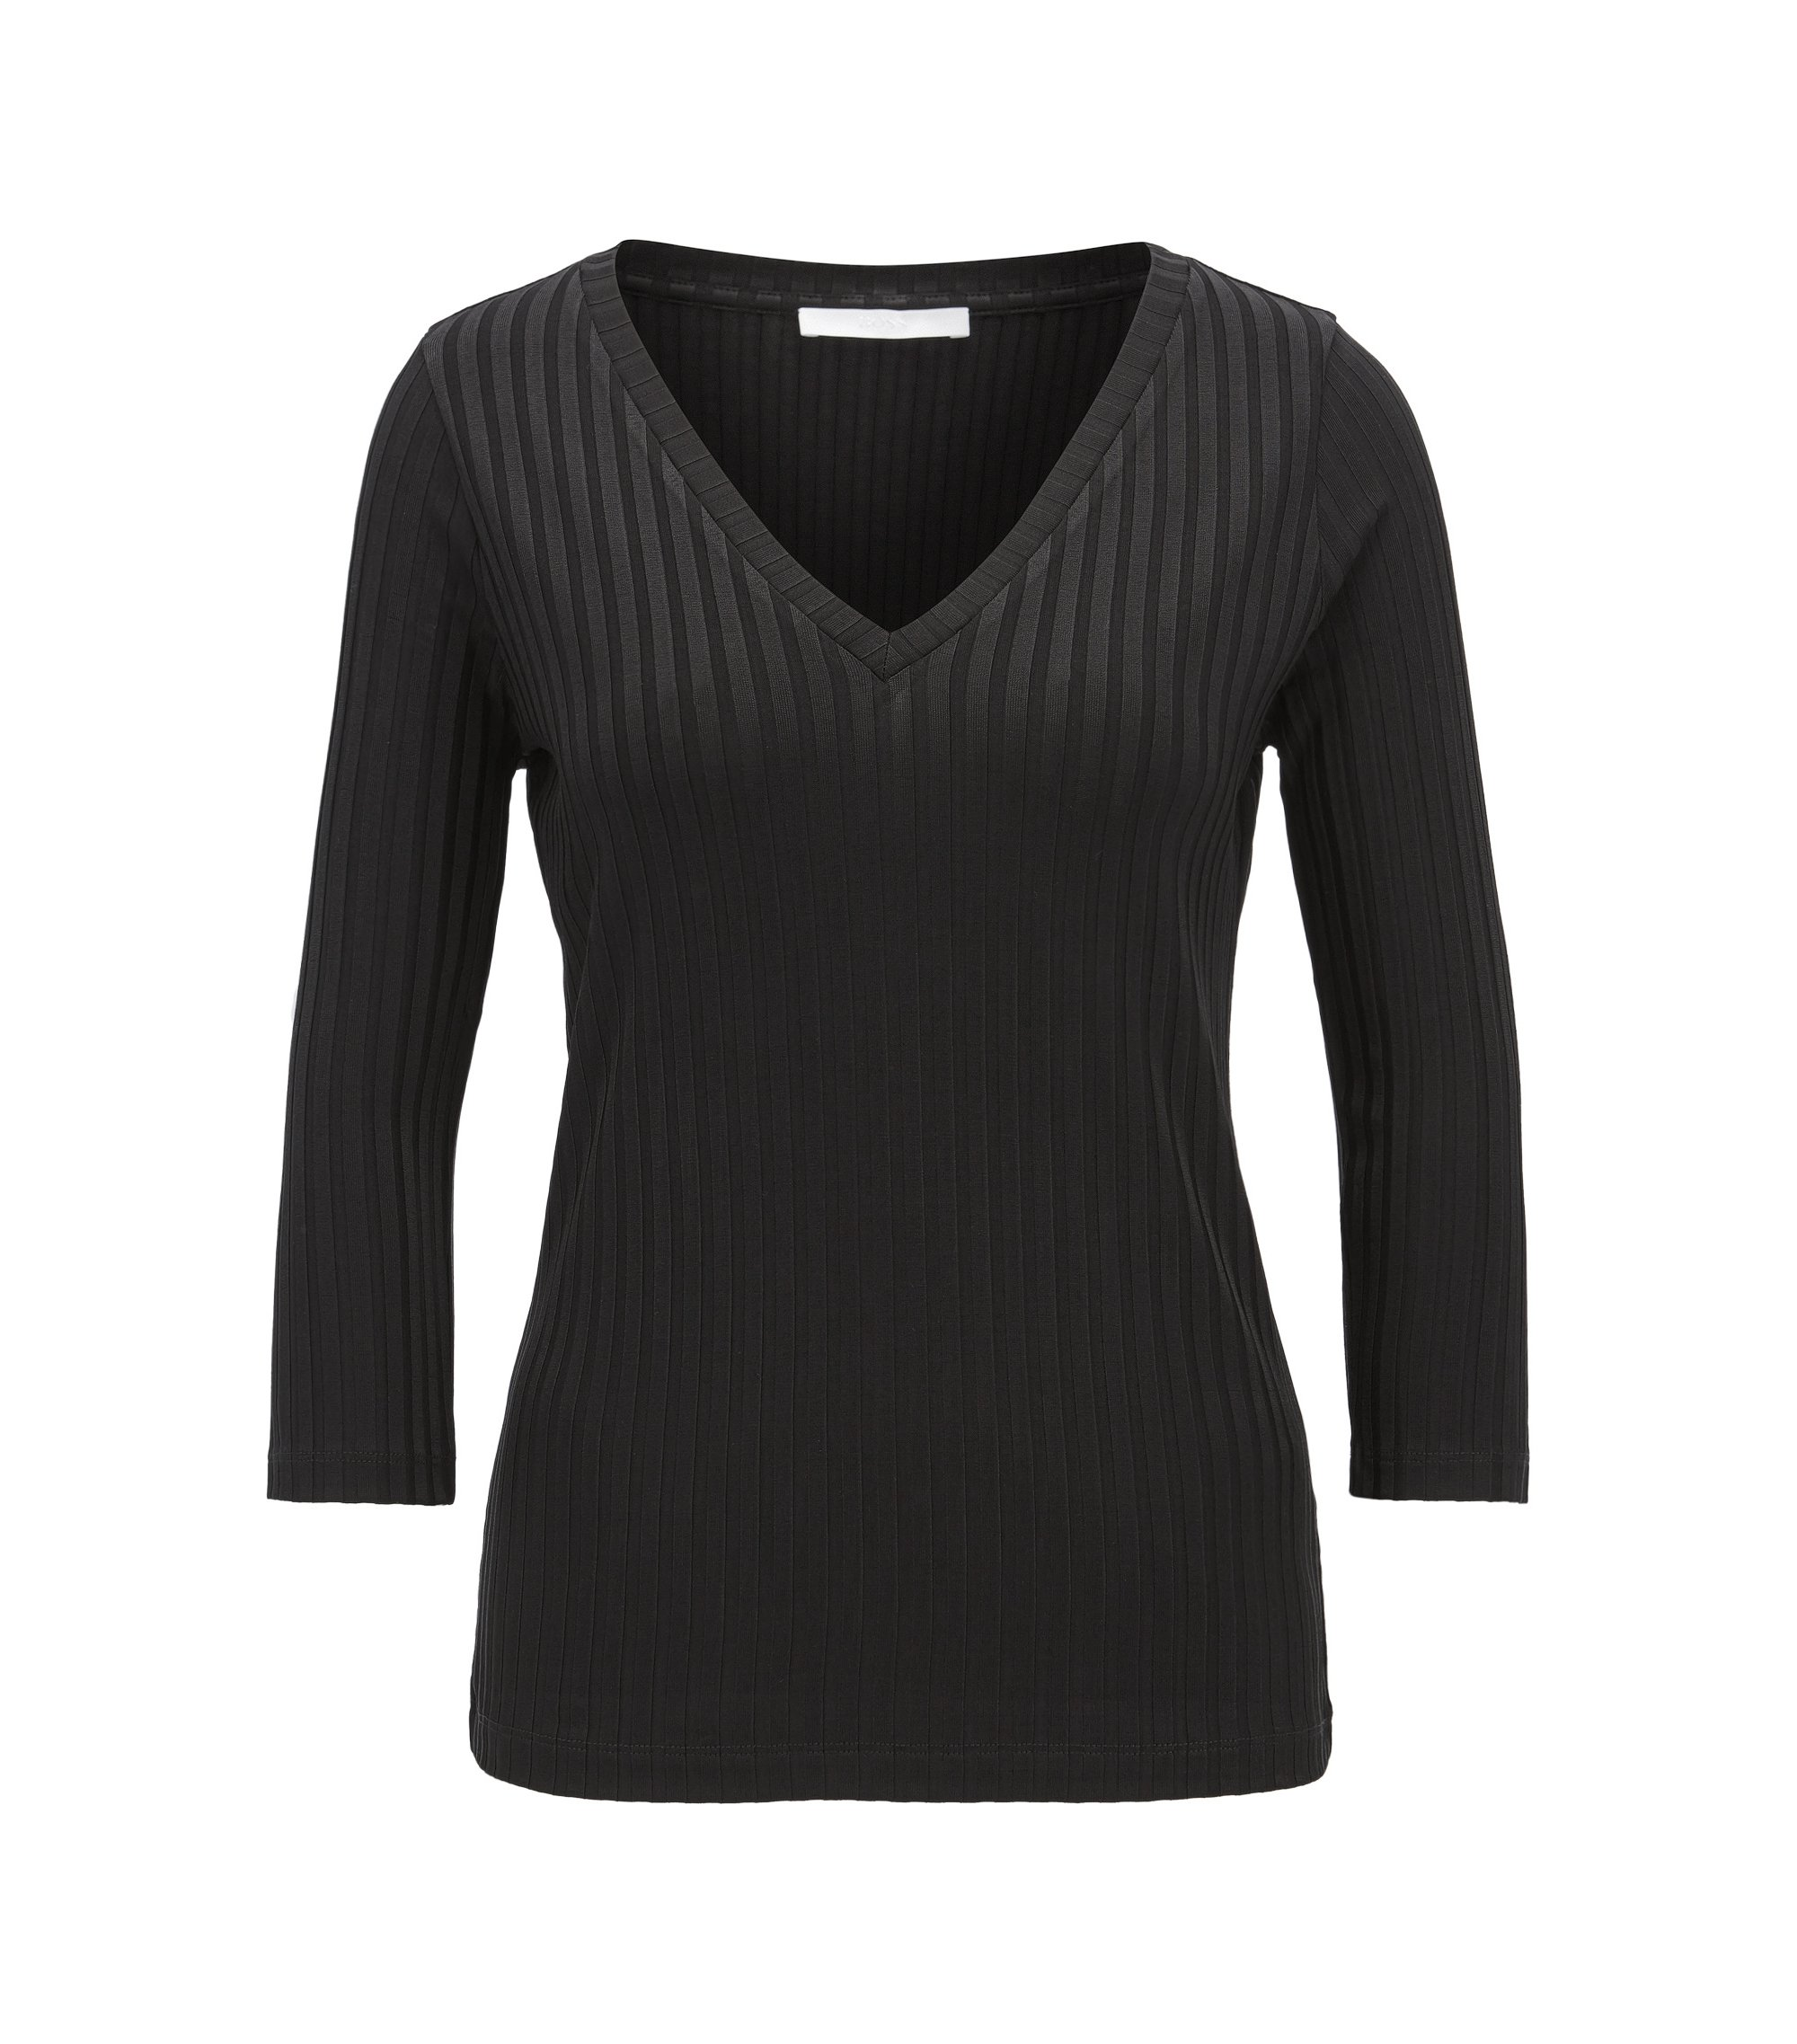 V-neck top in ribbed jersey, Black